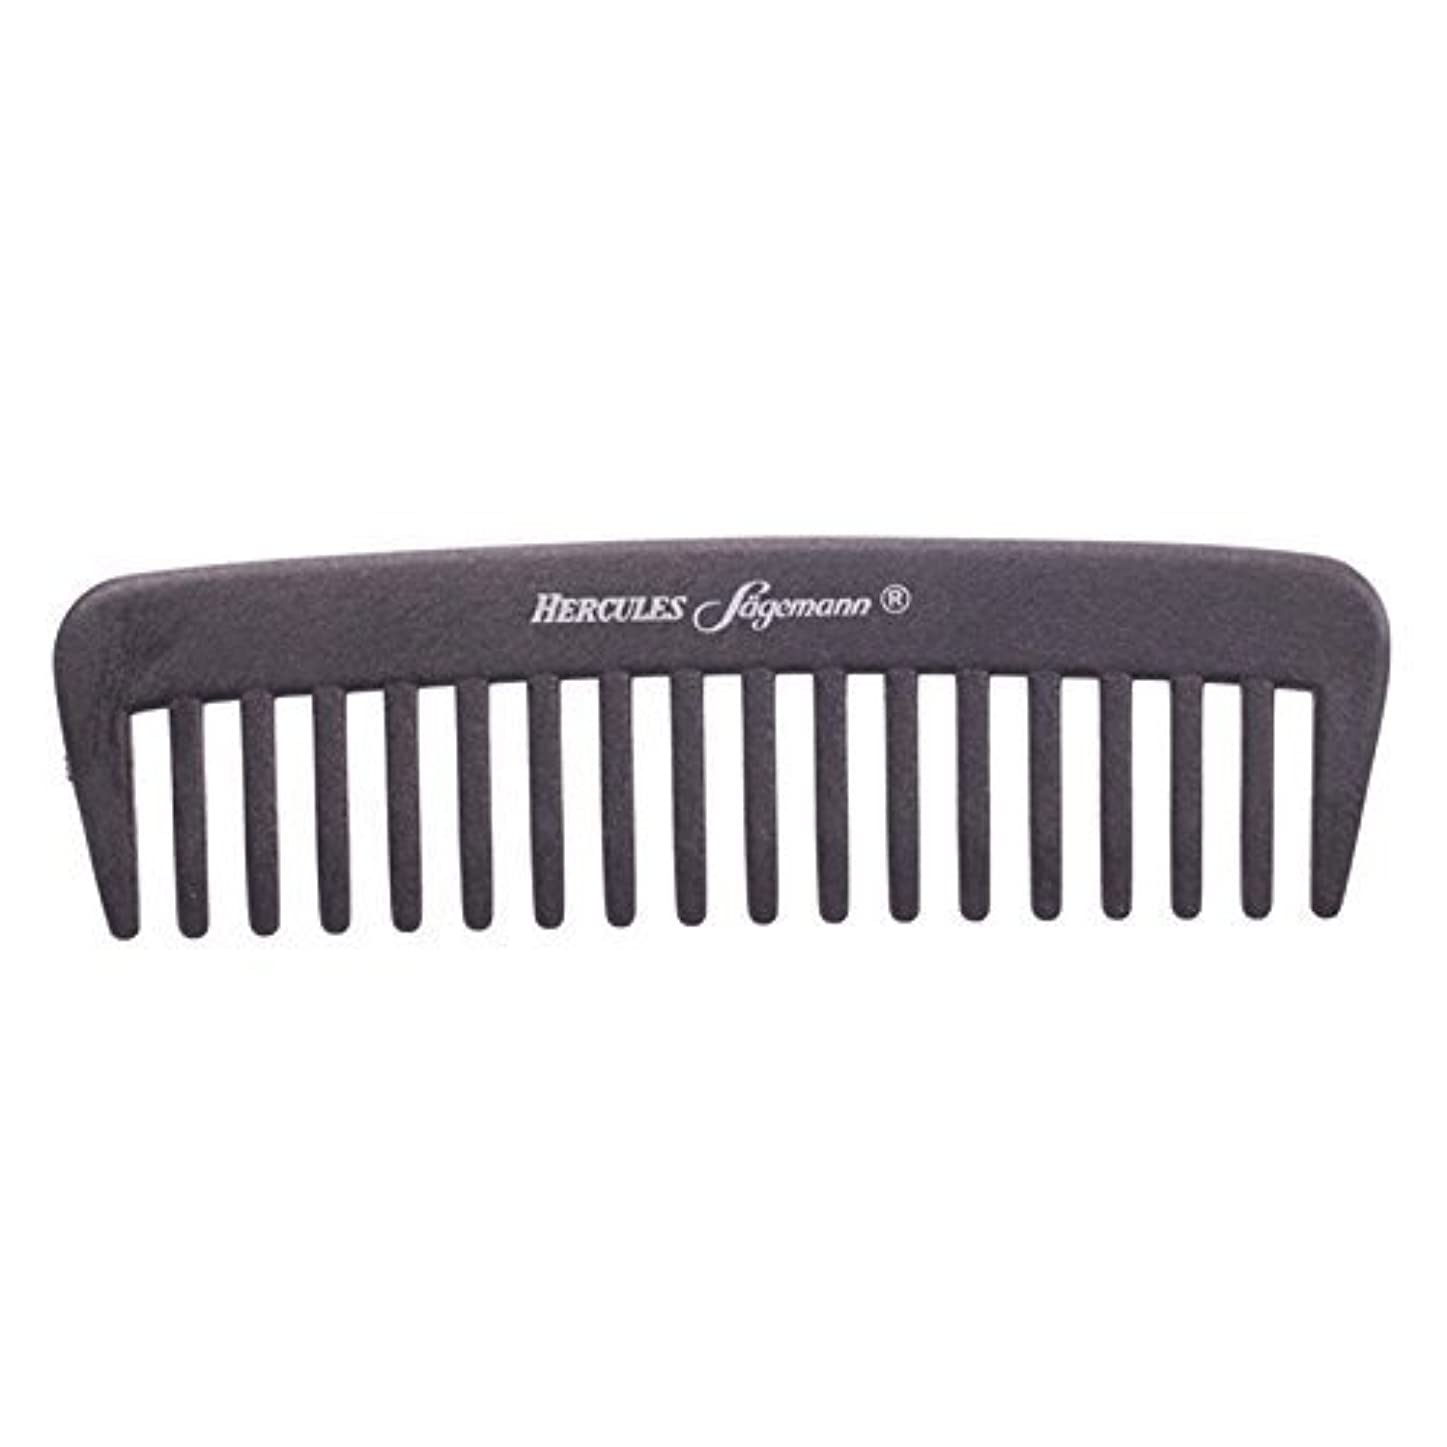 Hercules S?gemann Carbon Afro - Hair Styler Comb for Curly Hair | Made in Germany [並行輸入品]